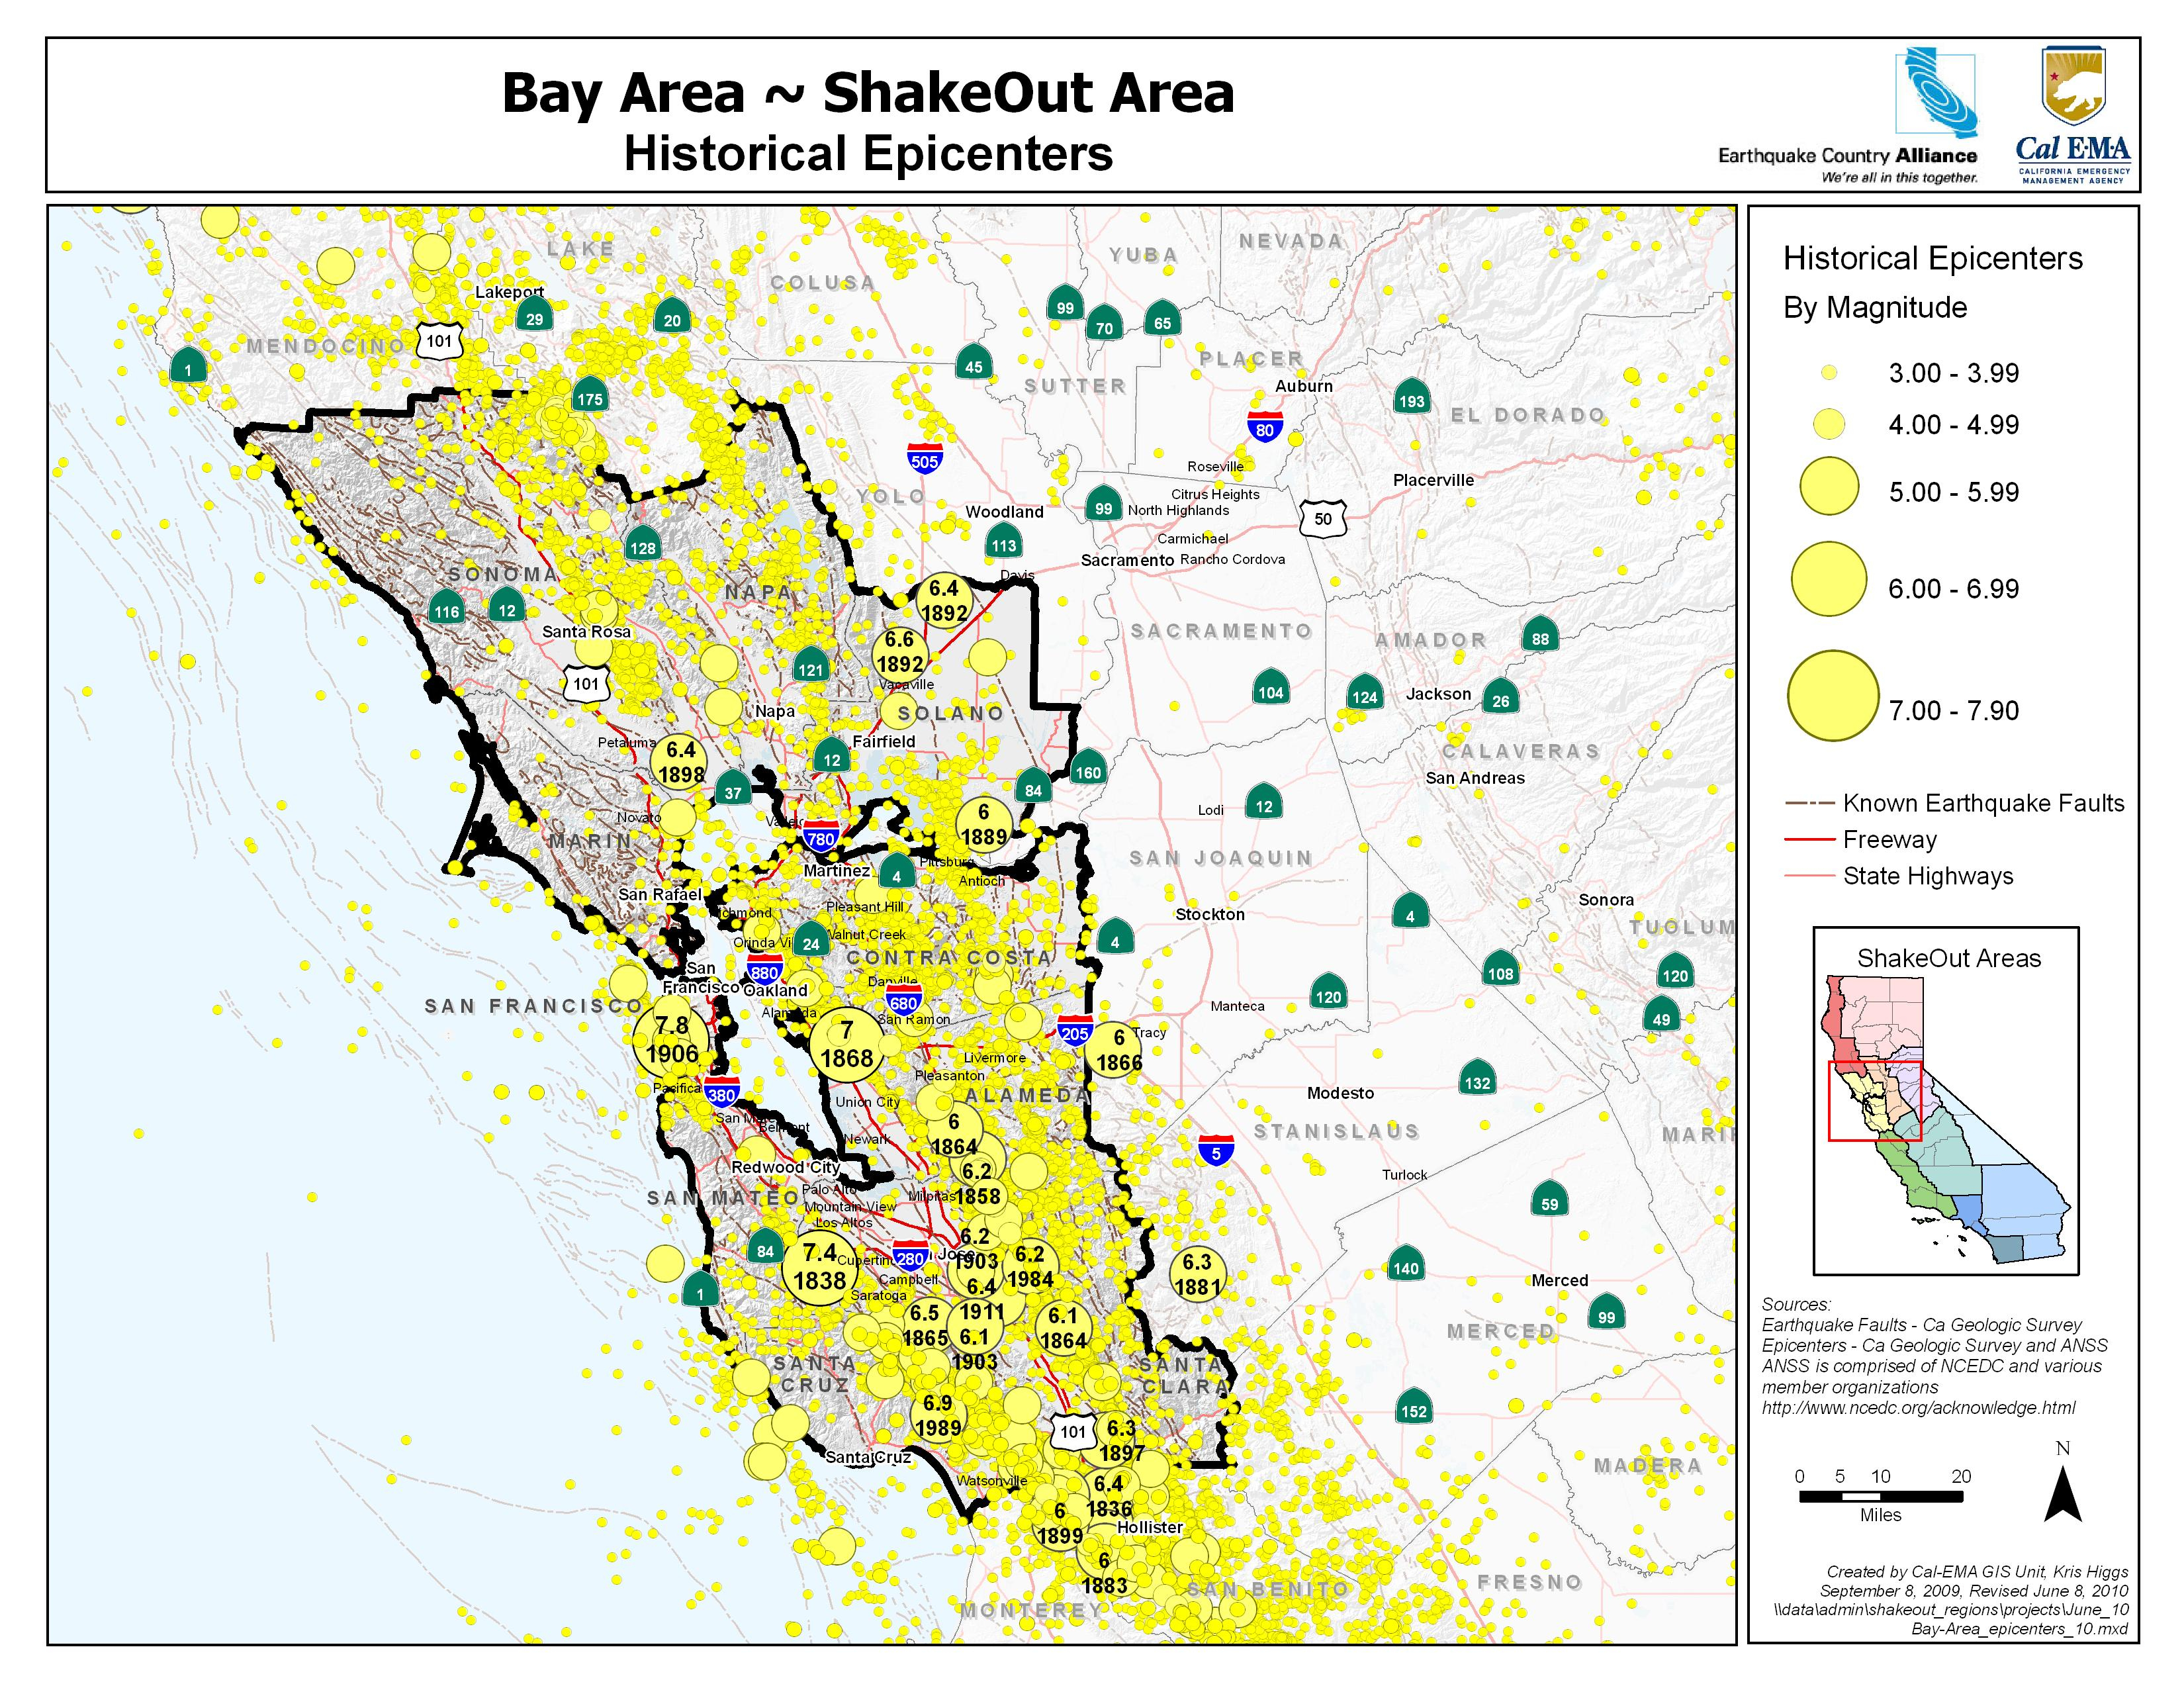 Bay Area Epicenters Map Picture Maps California Earthquake Risk Map - Map Of Bay Area California Cities